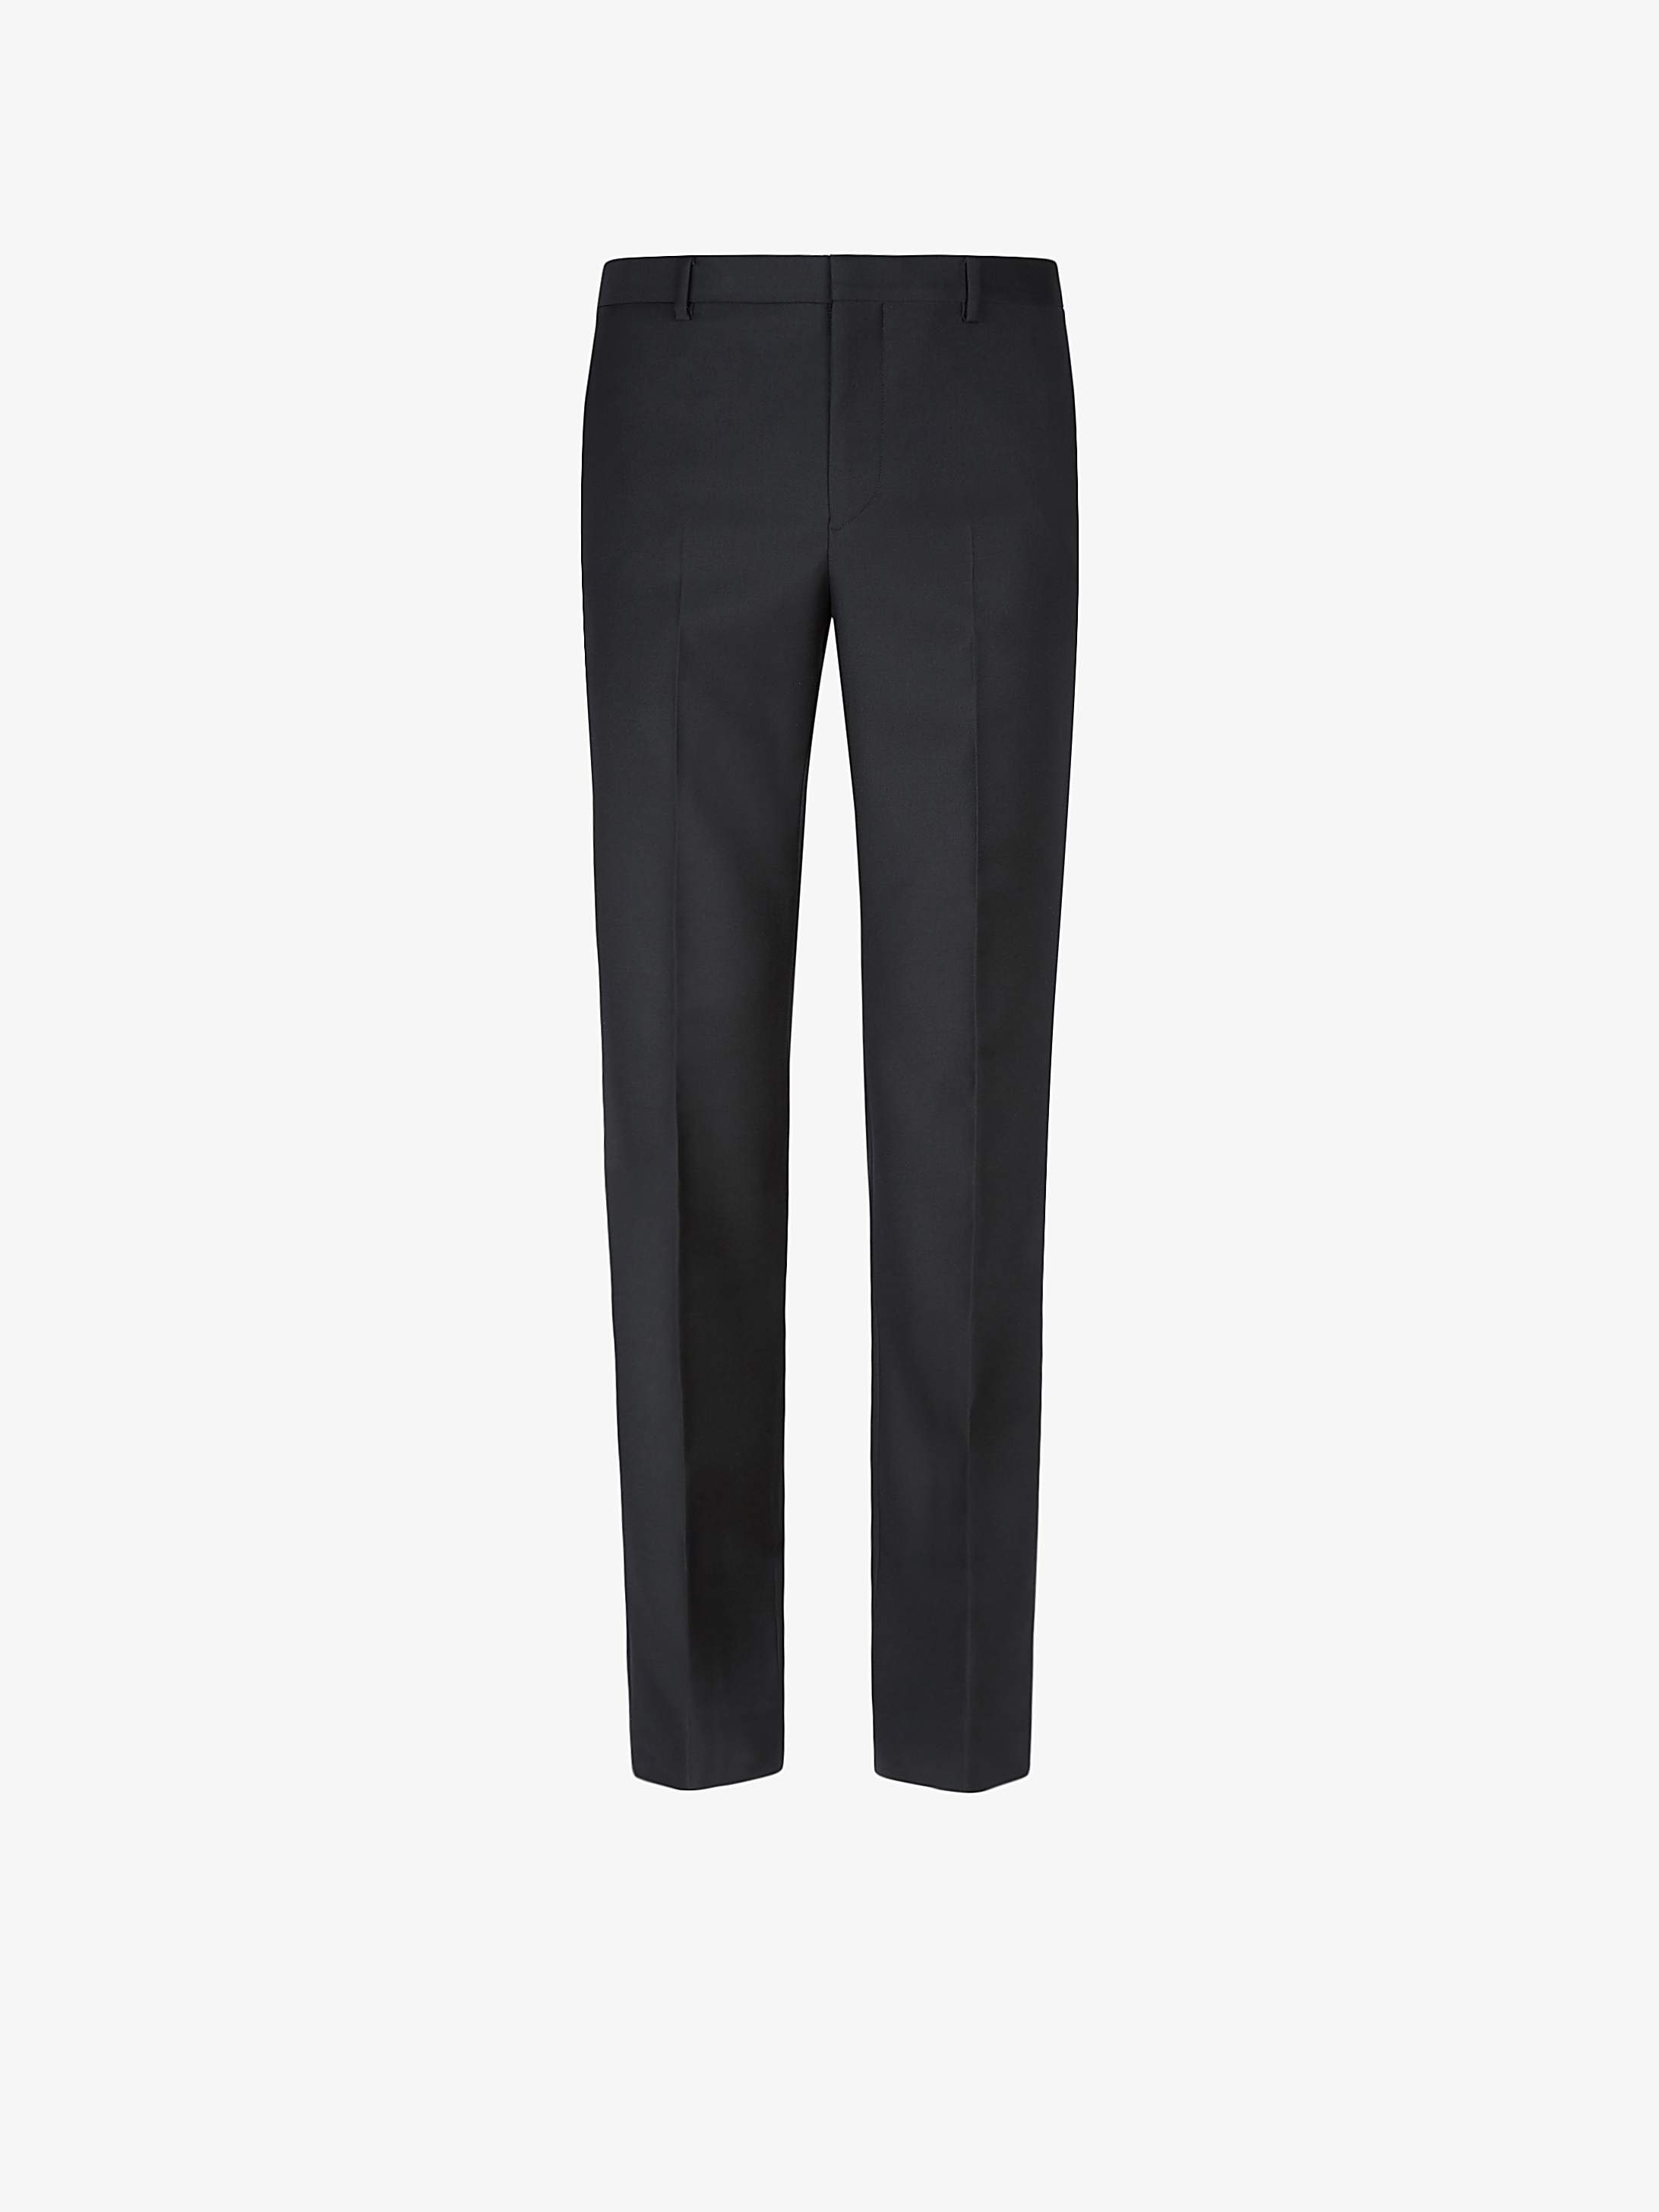 Pants in wool twill